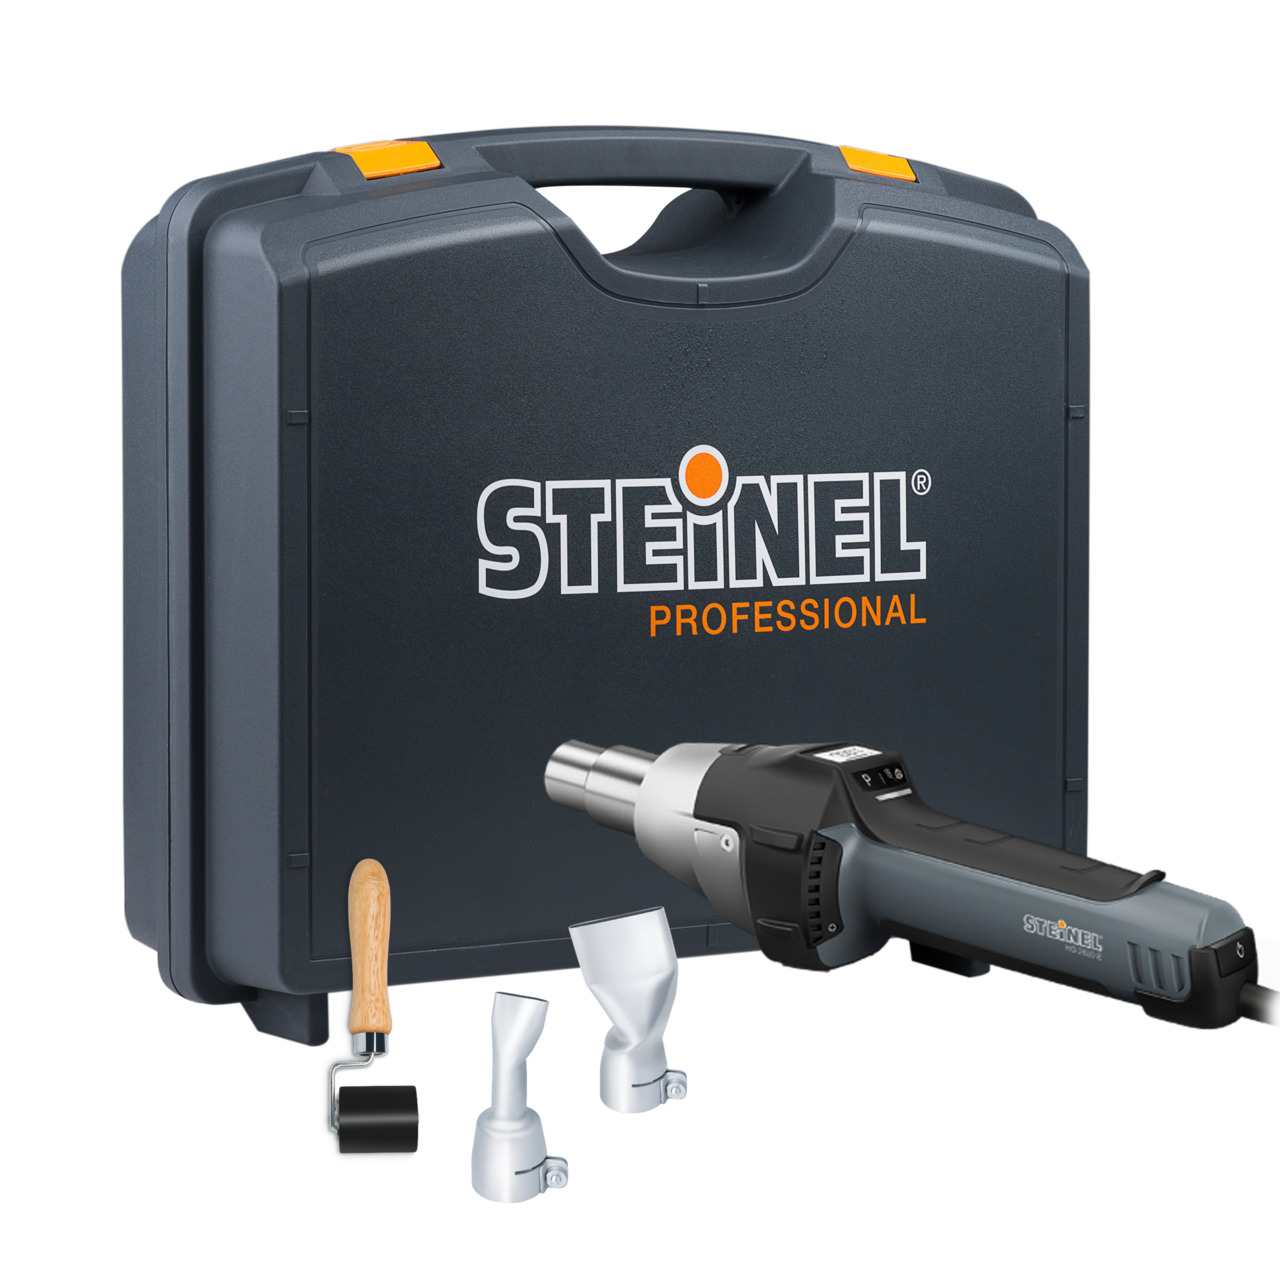 Steinel Air Chaud soufflante HL 1400 S Valise Set soufflante air chaud pistolet